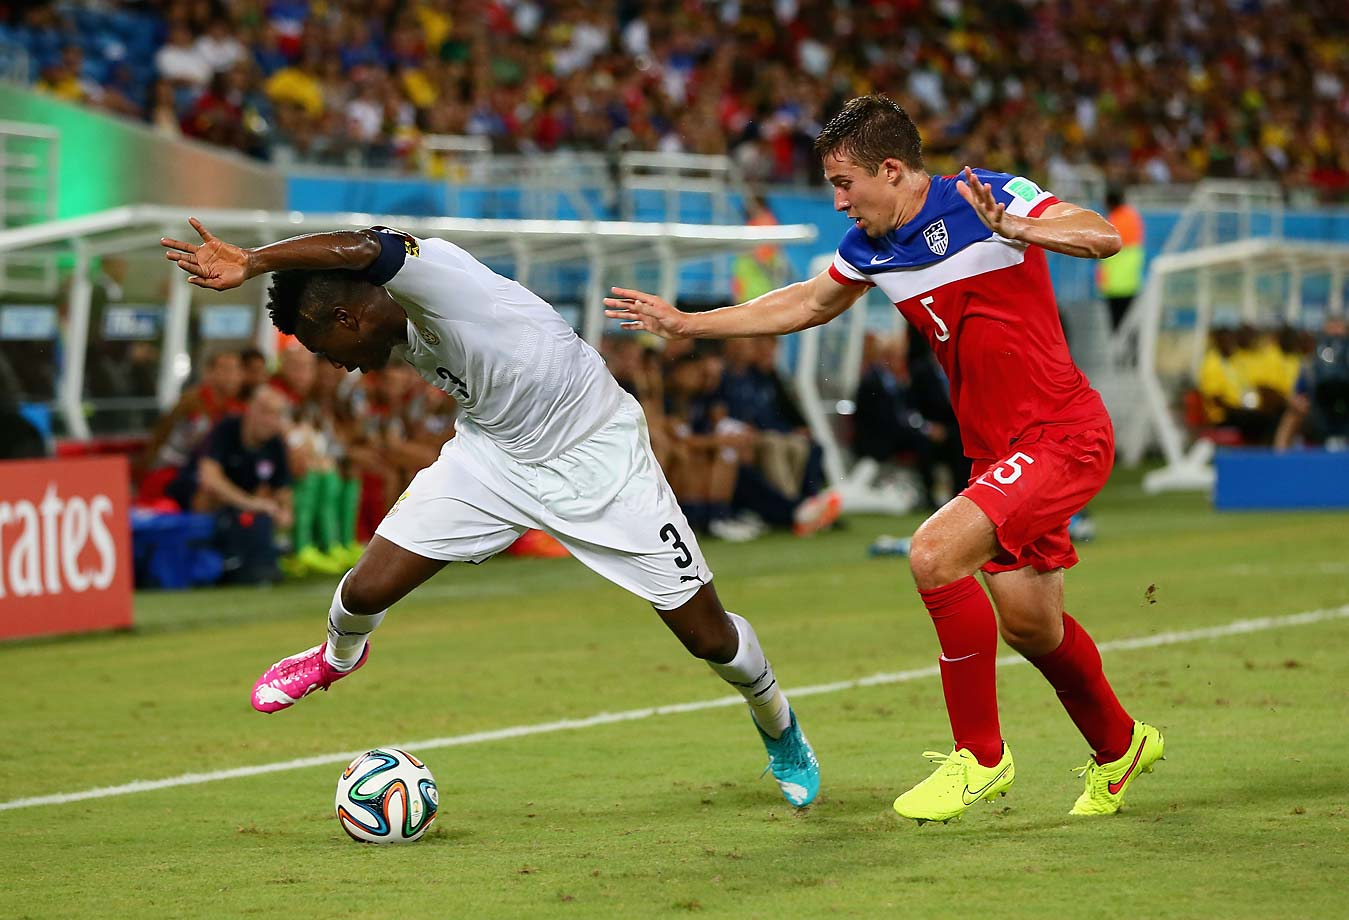 Asamoah Gyan of Ghana and Matt Besler of the United States battle for the ball.